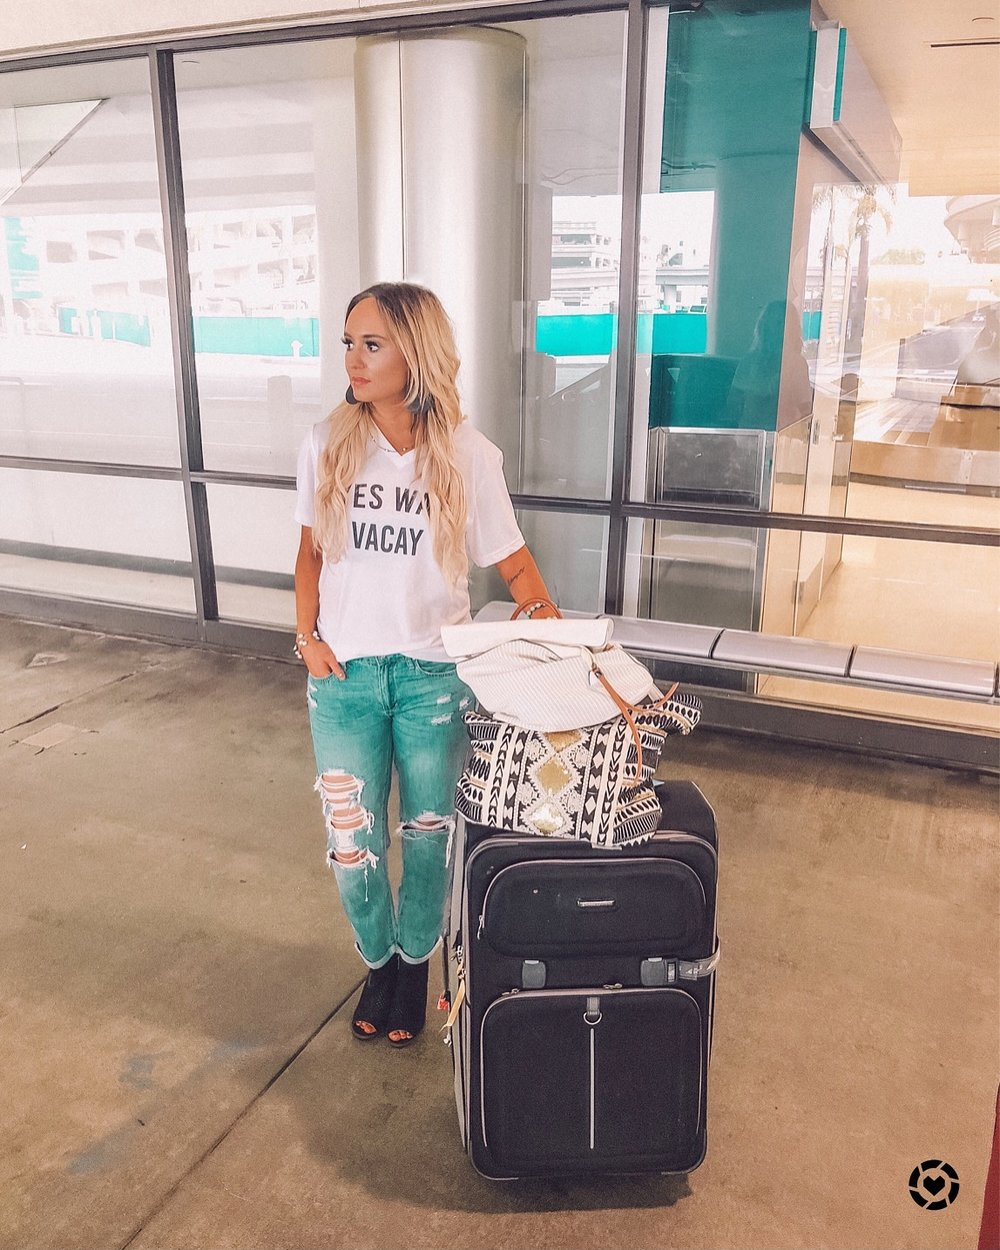 Yes way vacay tee:   Pink lily Monogram's